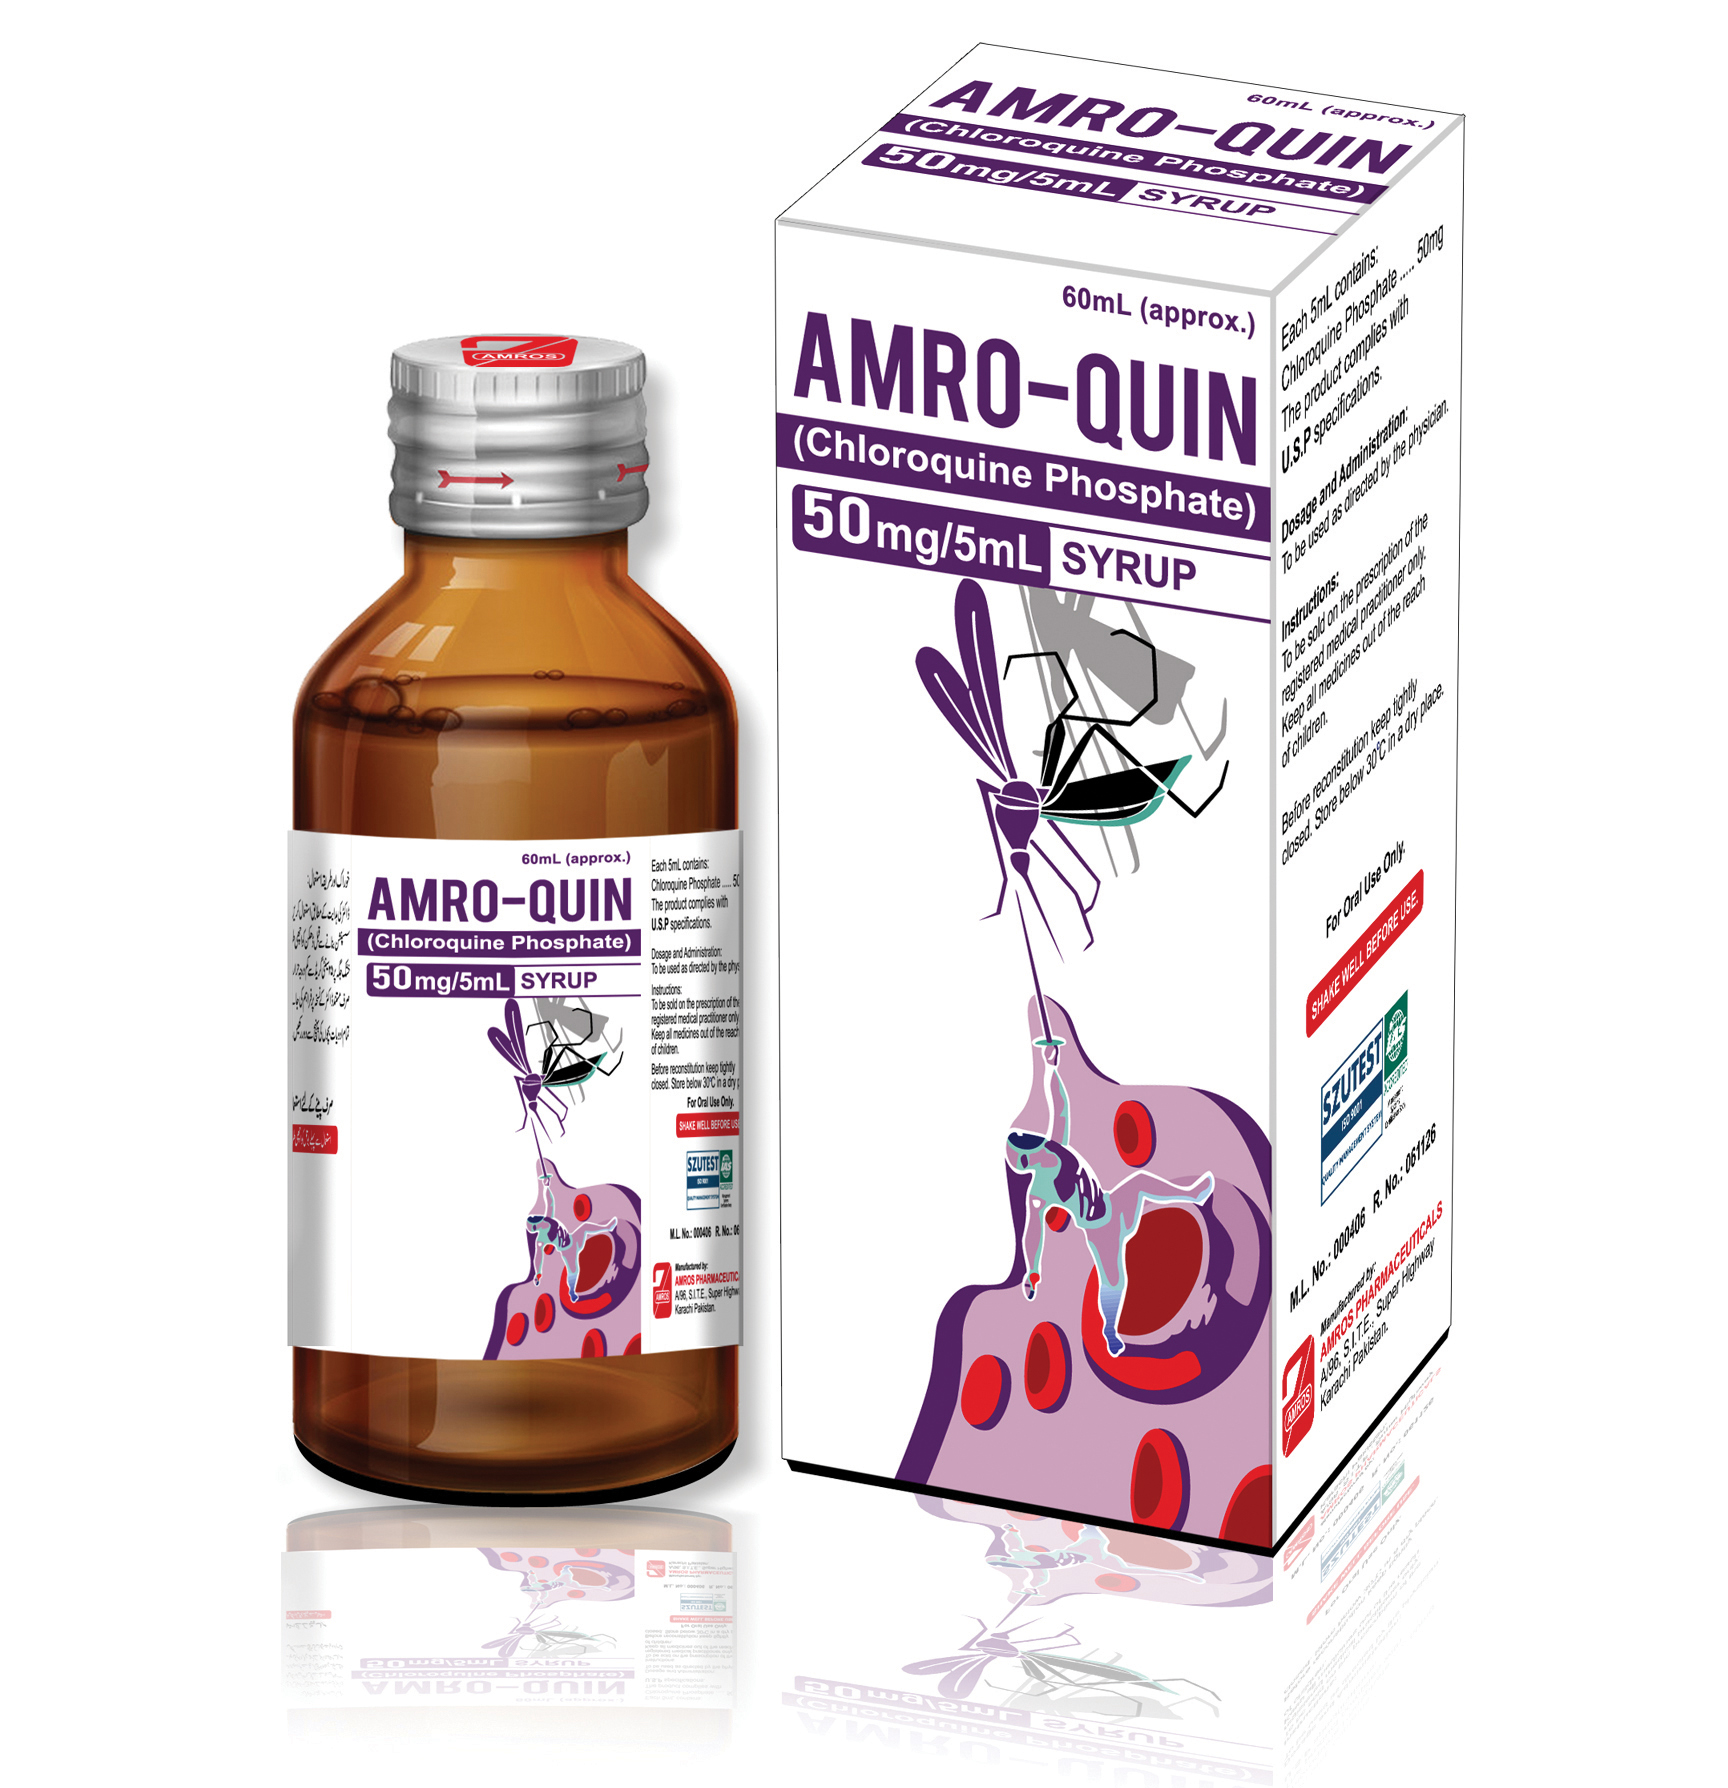 Amro-Quin 50mg/5mL Syrup